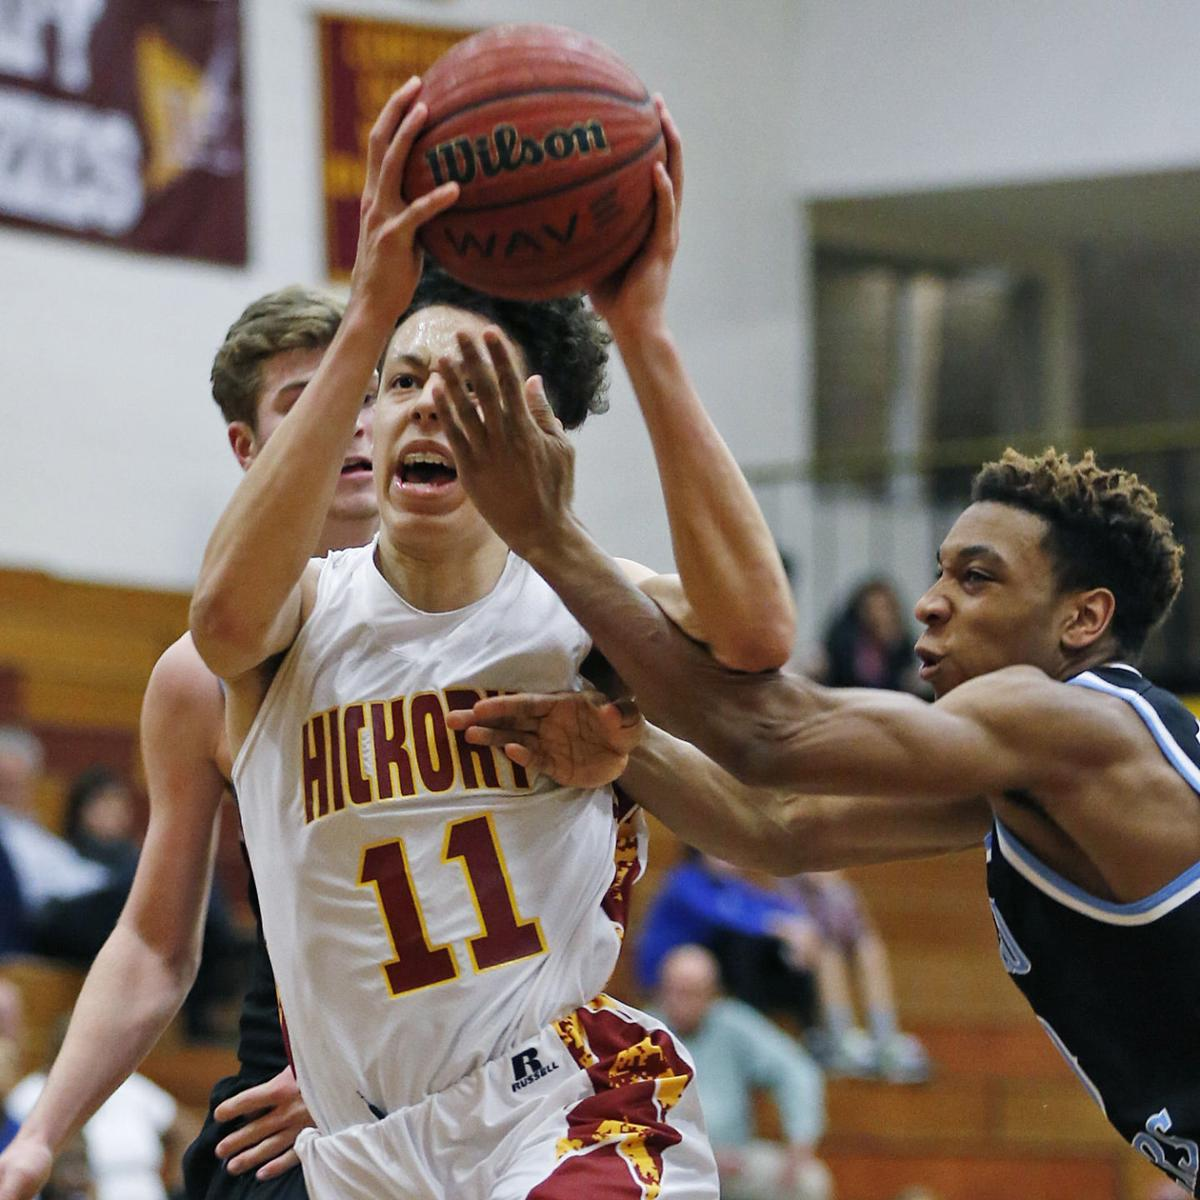 2017 SPORTS YEAR IN REVIEW: Hickory boys hoops advances to